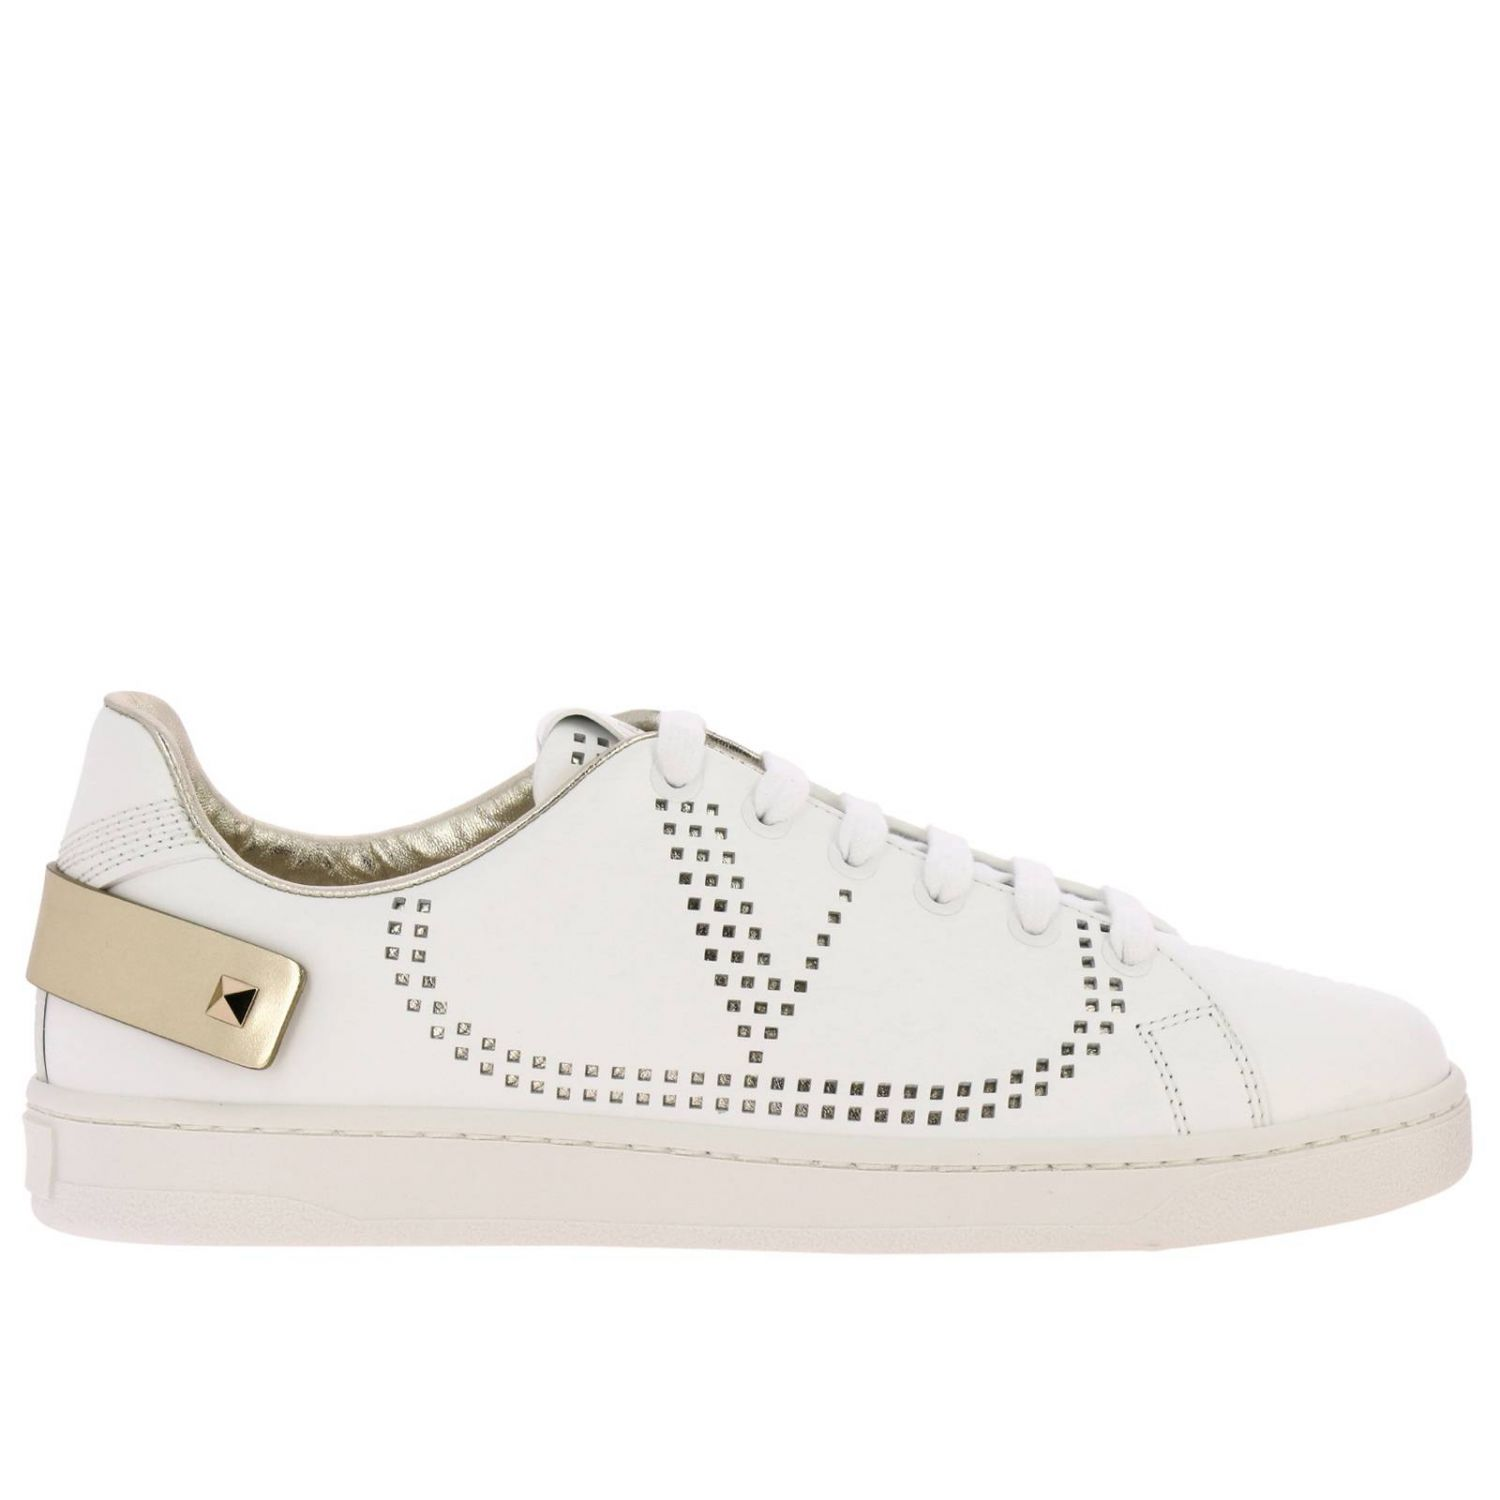 Valentino Garavani Backnet leather sneakers with micro perforated logo white 1